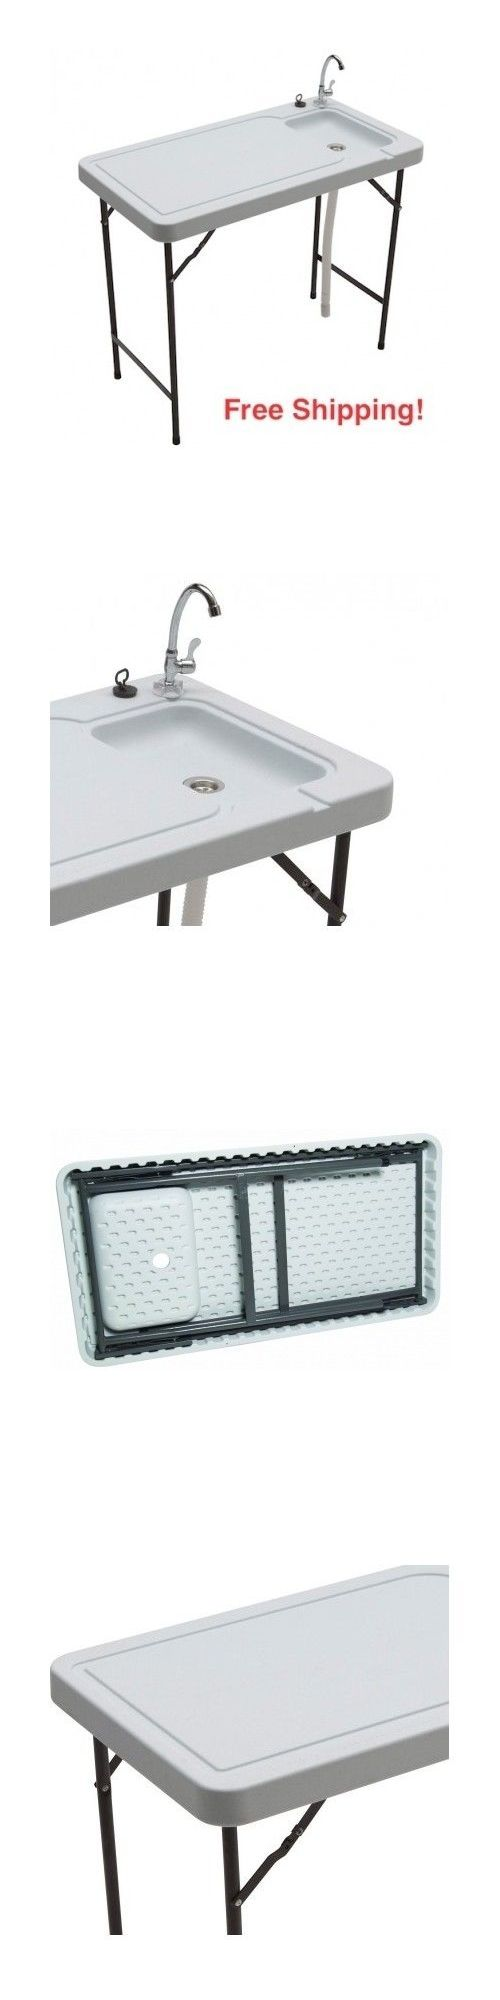 Coleman fish cleaning table re camping sink - Fillet Tables And Cutting Boards 161823 Game Cleaning Table Fish Hunters Portable Sink 150 Pound